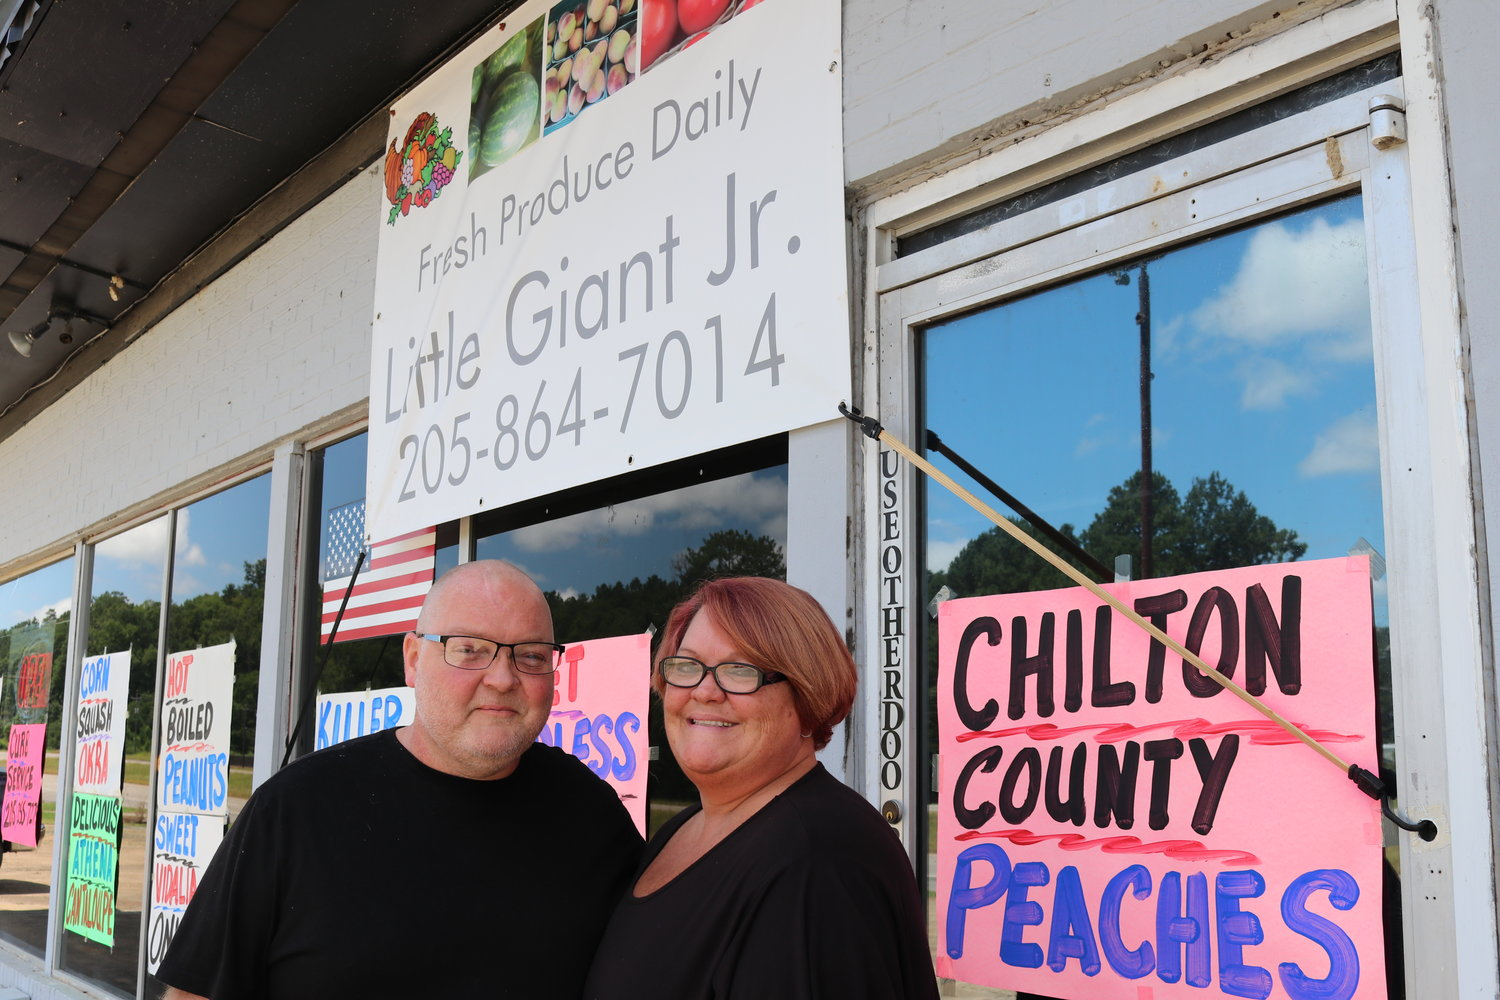 Jon and Alison Phillips opened Little Giant Jr. Farm Market in July. The produce market is in Rocky Hollow on Hwy. 78 in Sumiton.